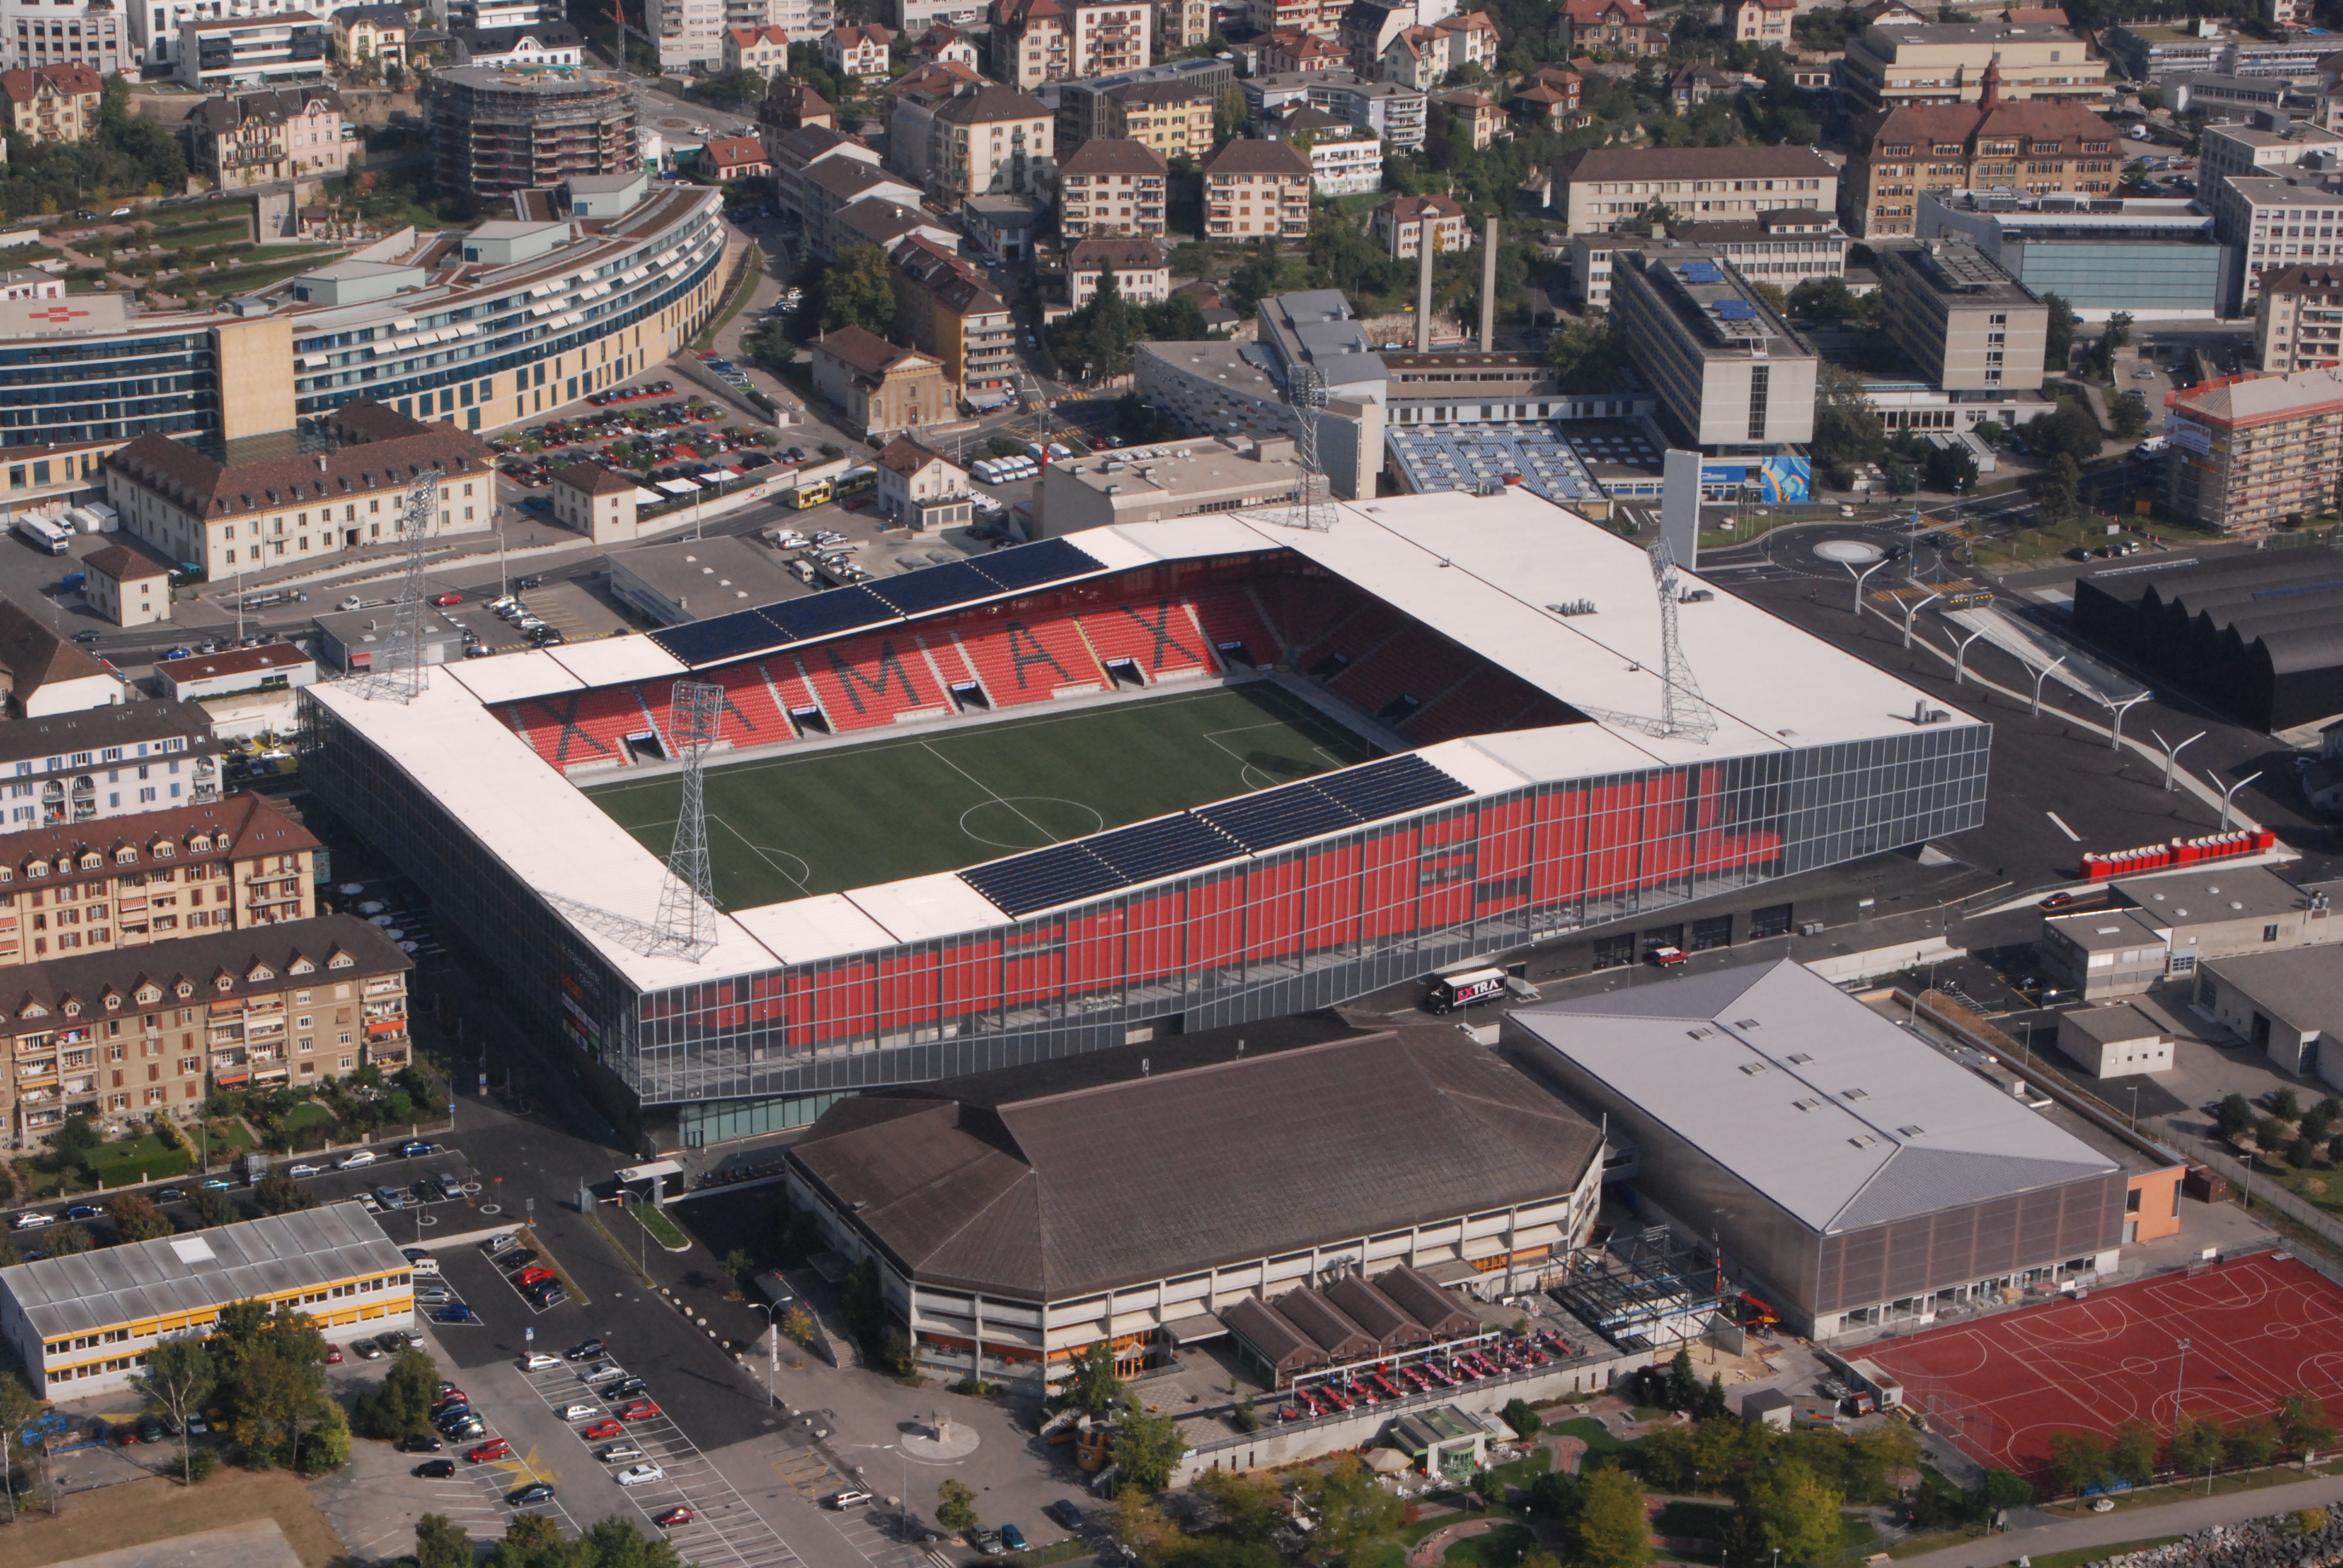 Picture 2 – Photovoltaics  on the roof of the stadium